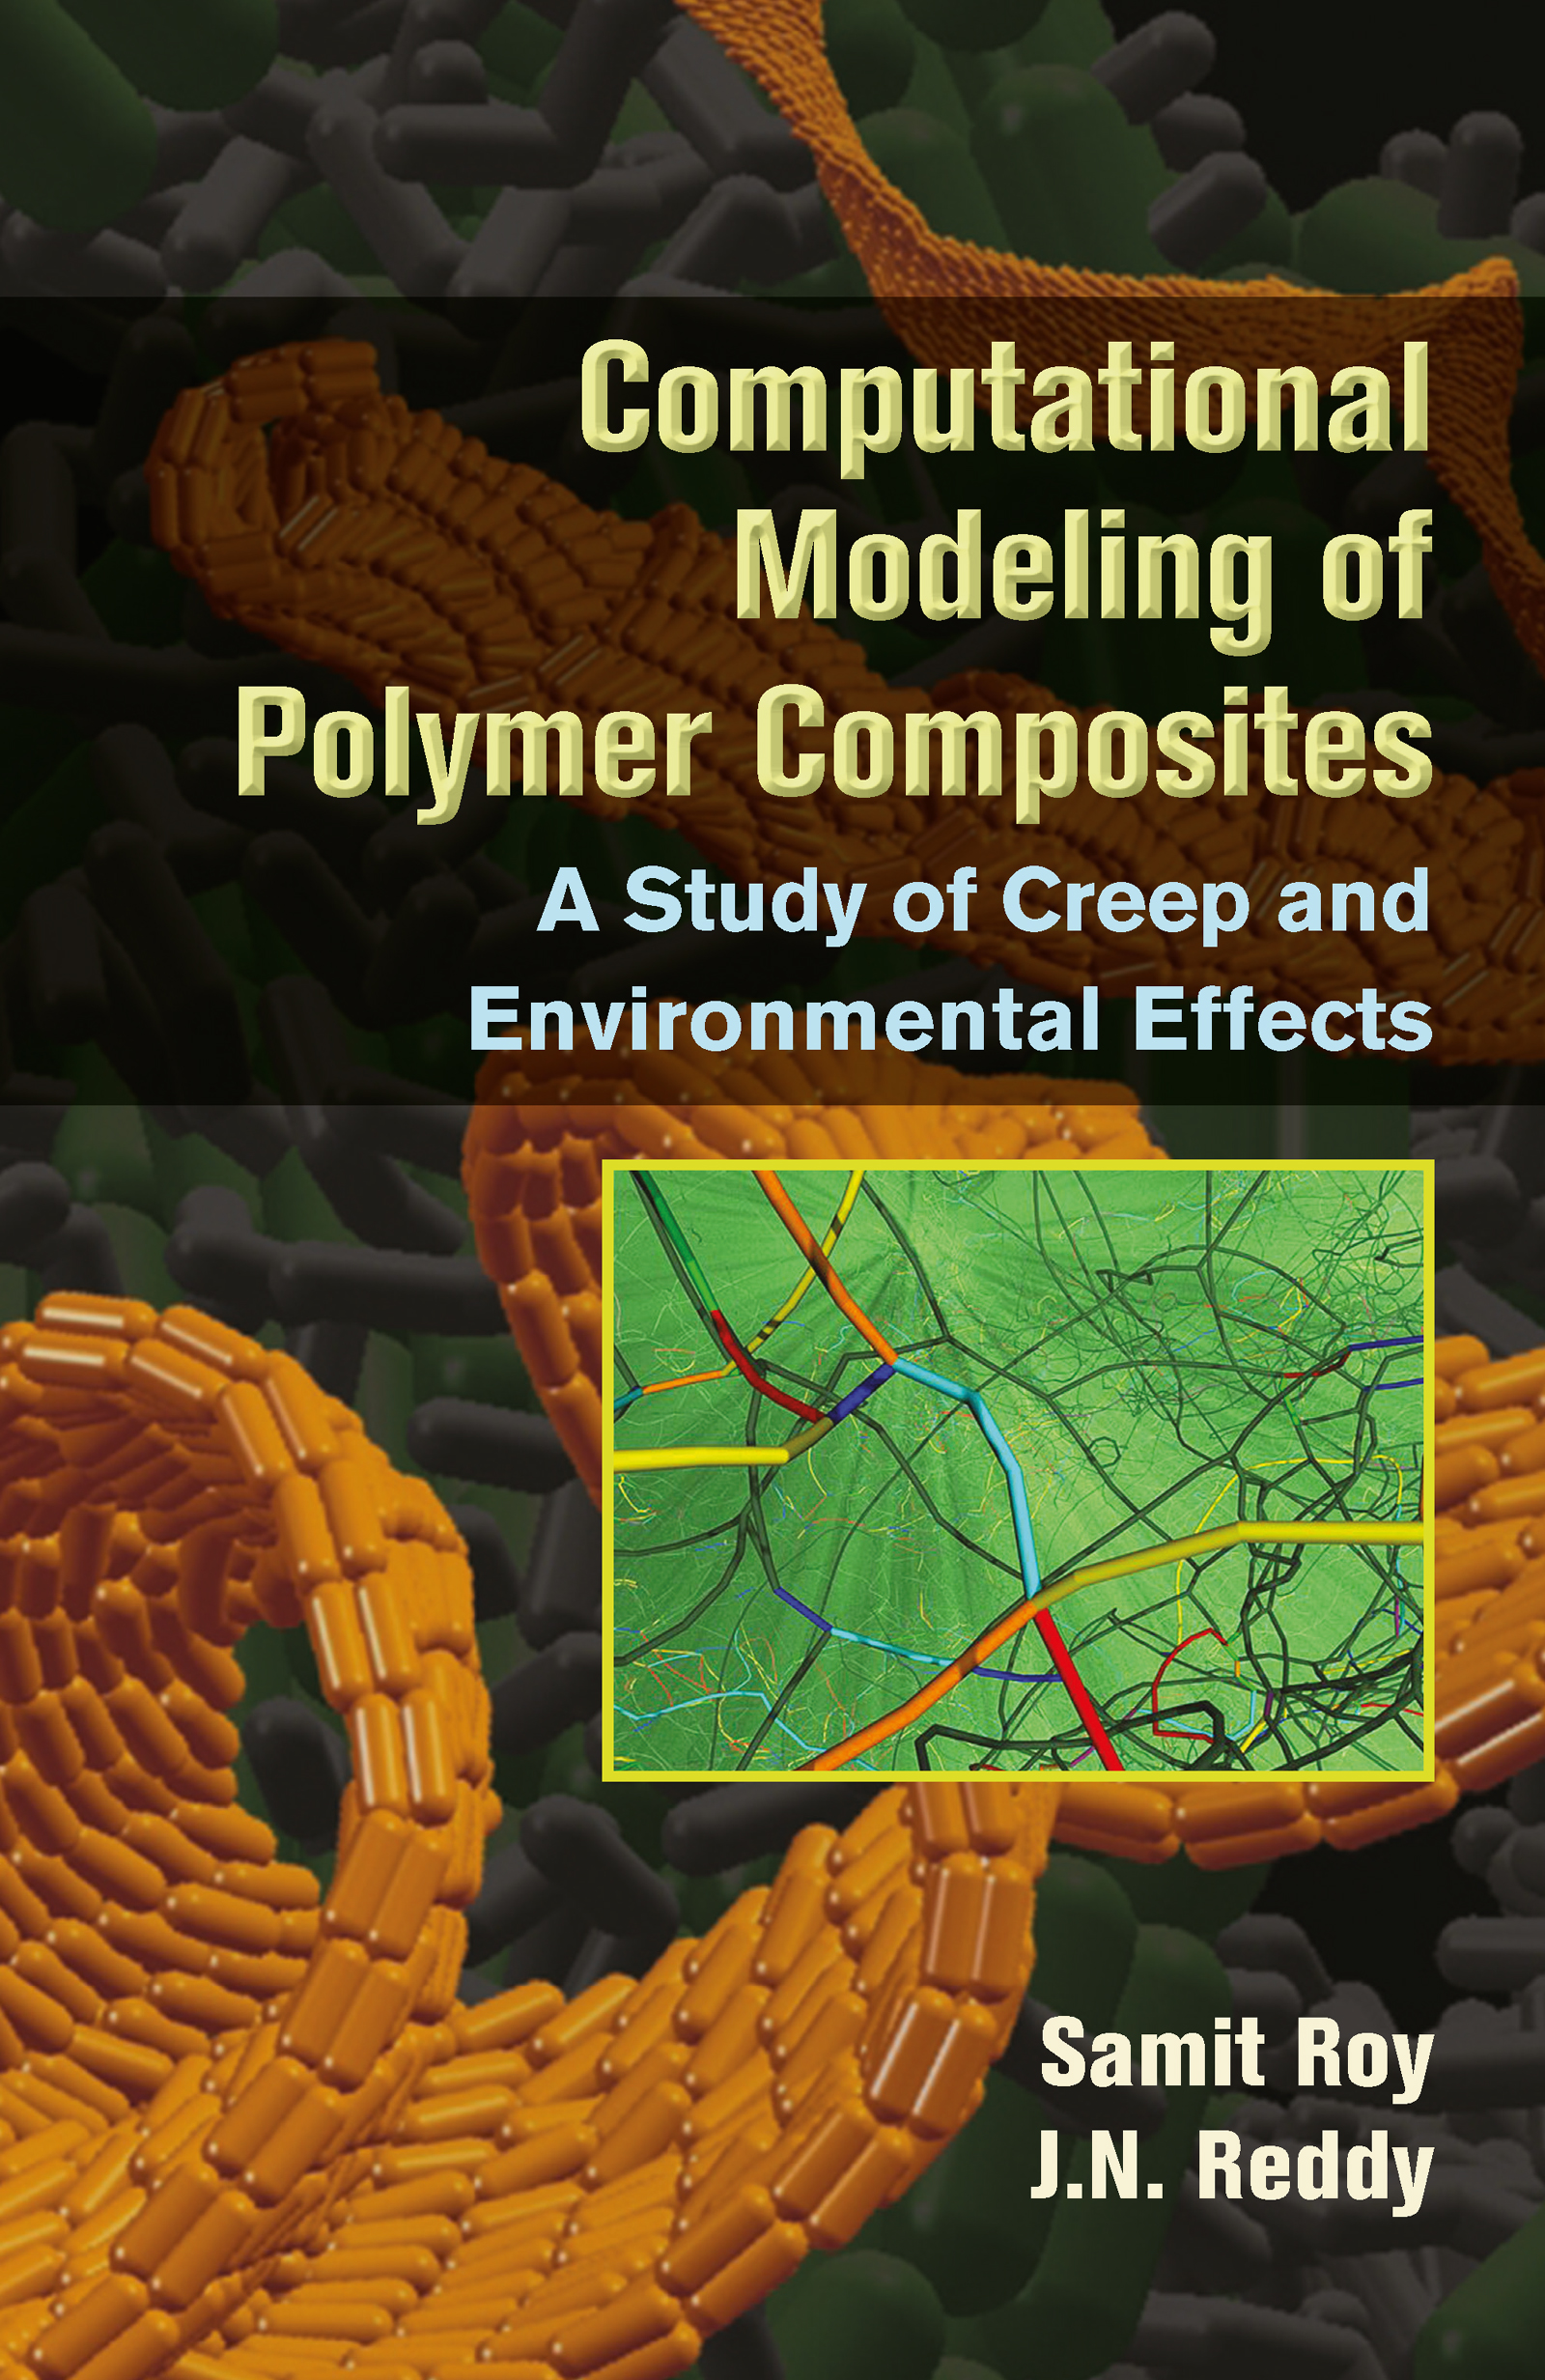 Computational Modeling of Polymer Composites: A Study of Creep and Environmental Effects book cover